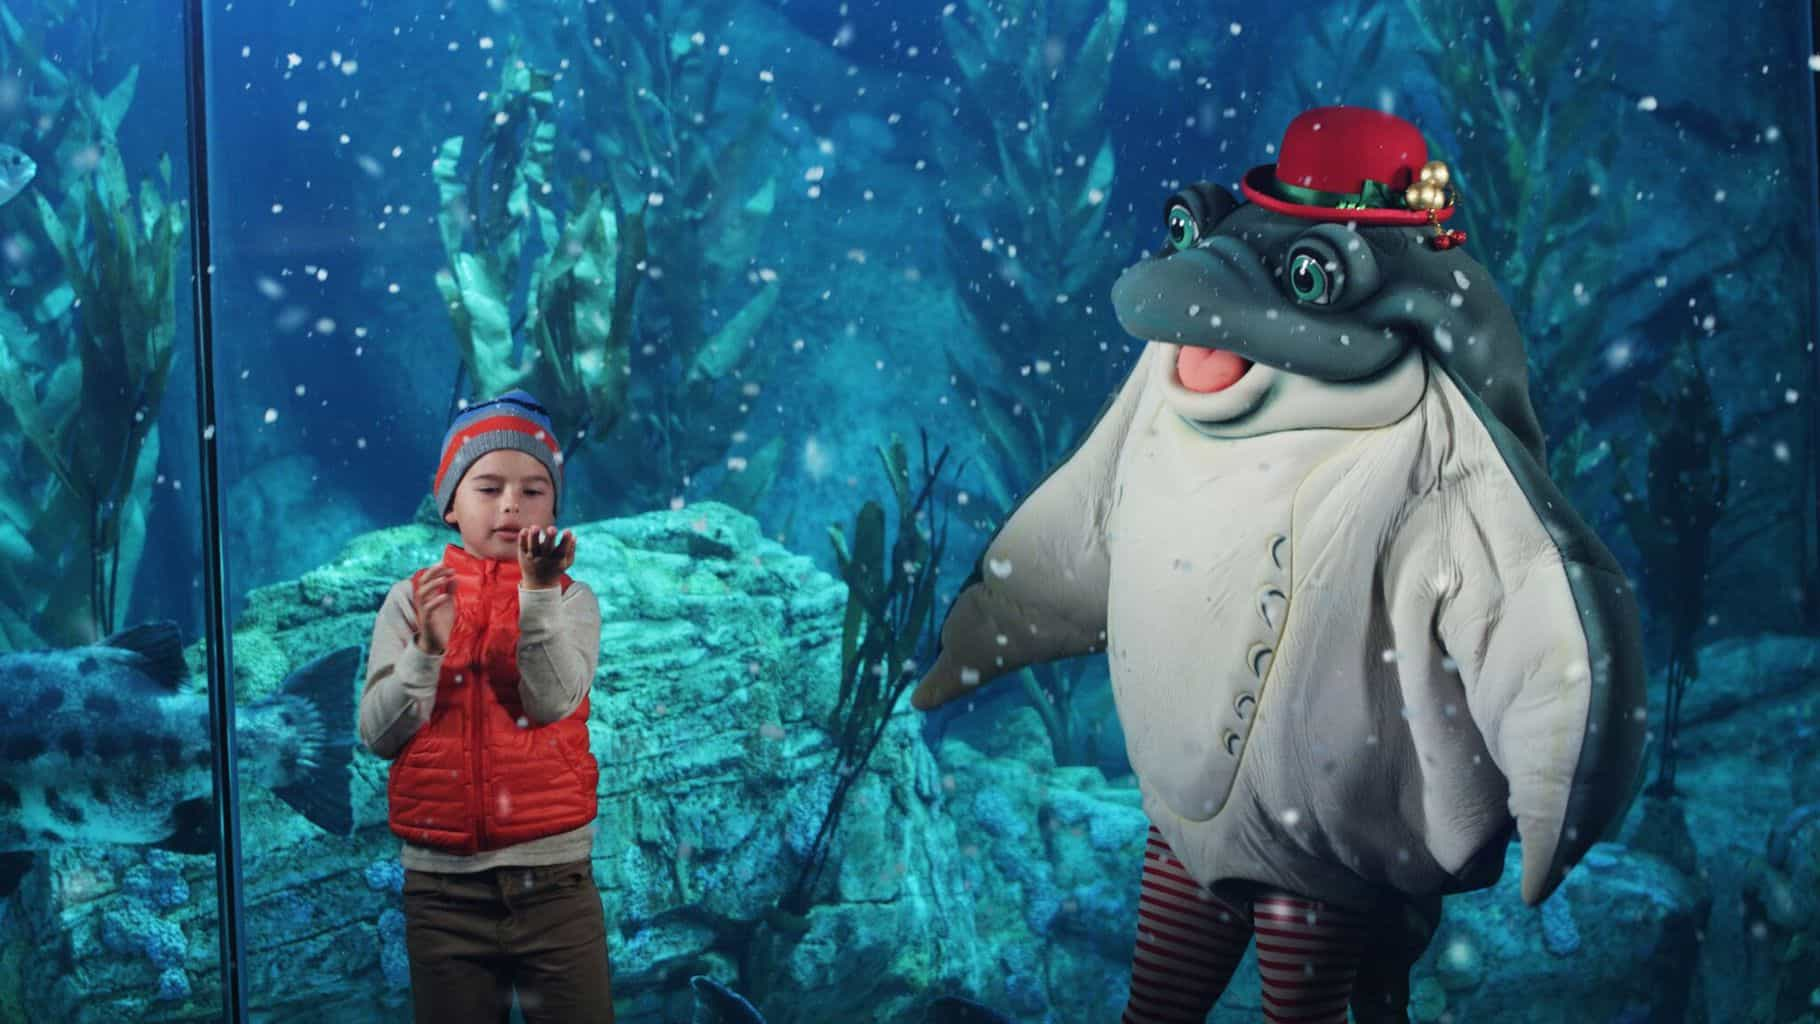 Celebrate the holidays at the Aquarium of the Pacific in Long Beach during their month-long Aquarium Holidays celebration.